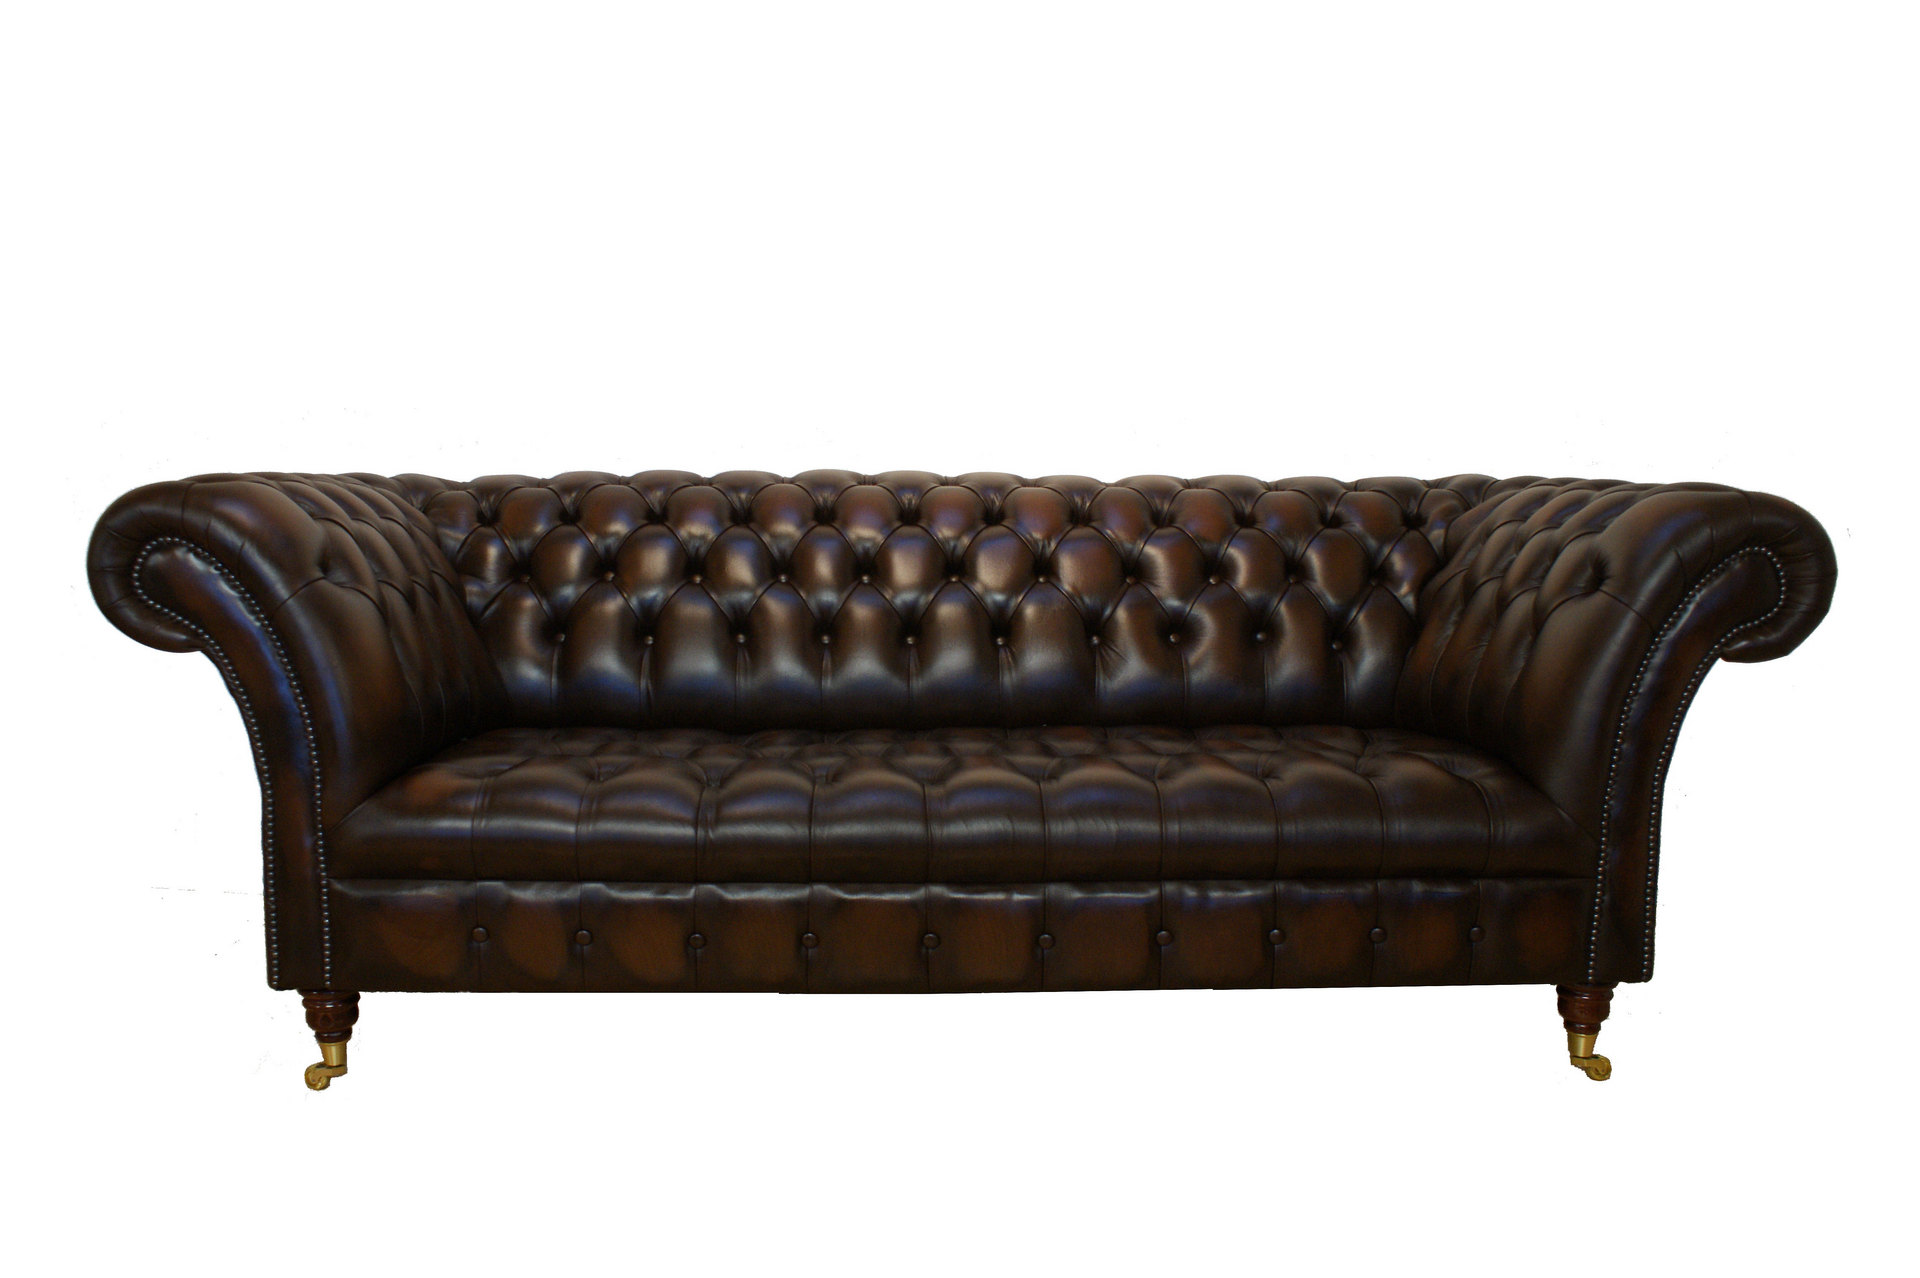 chesterfield-balmoral-sofa.jpg